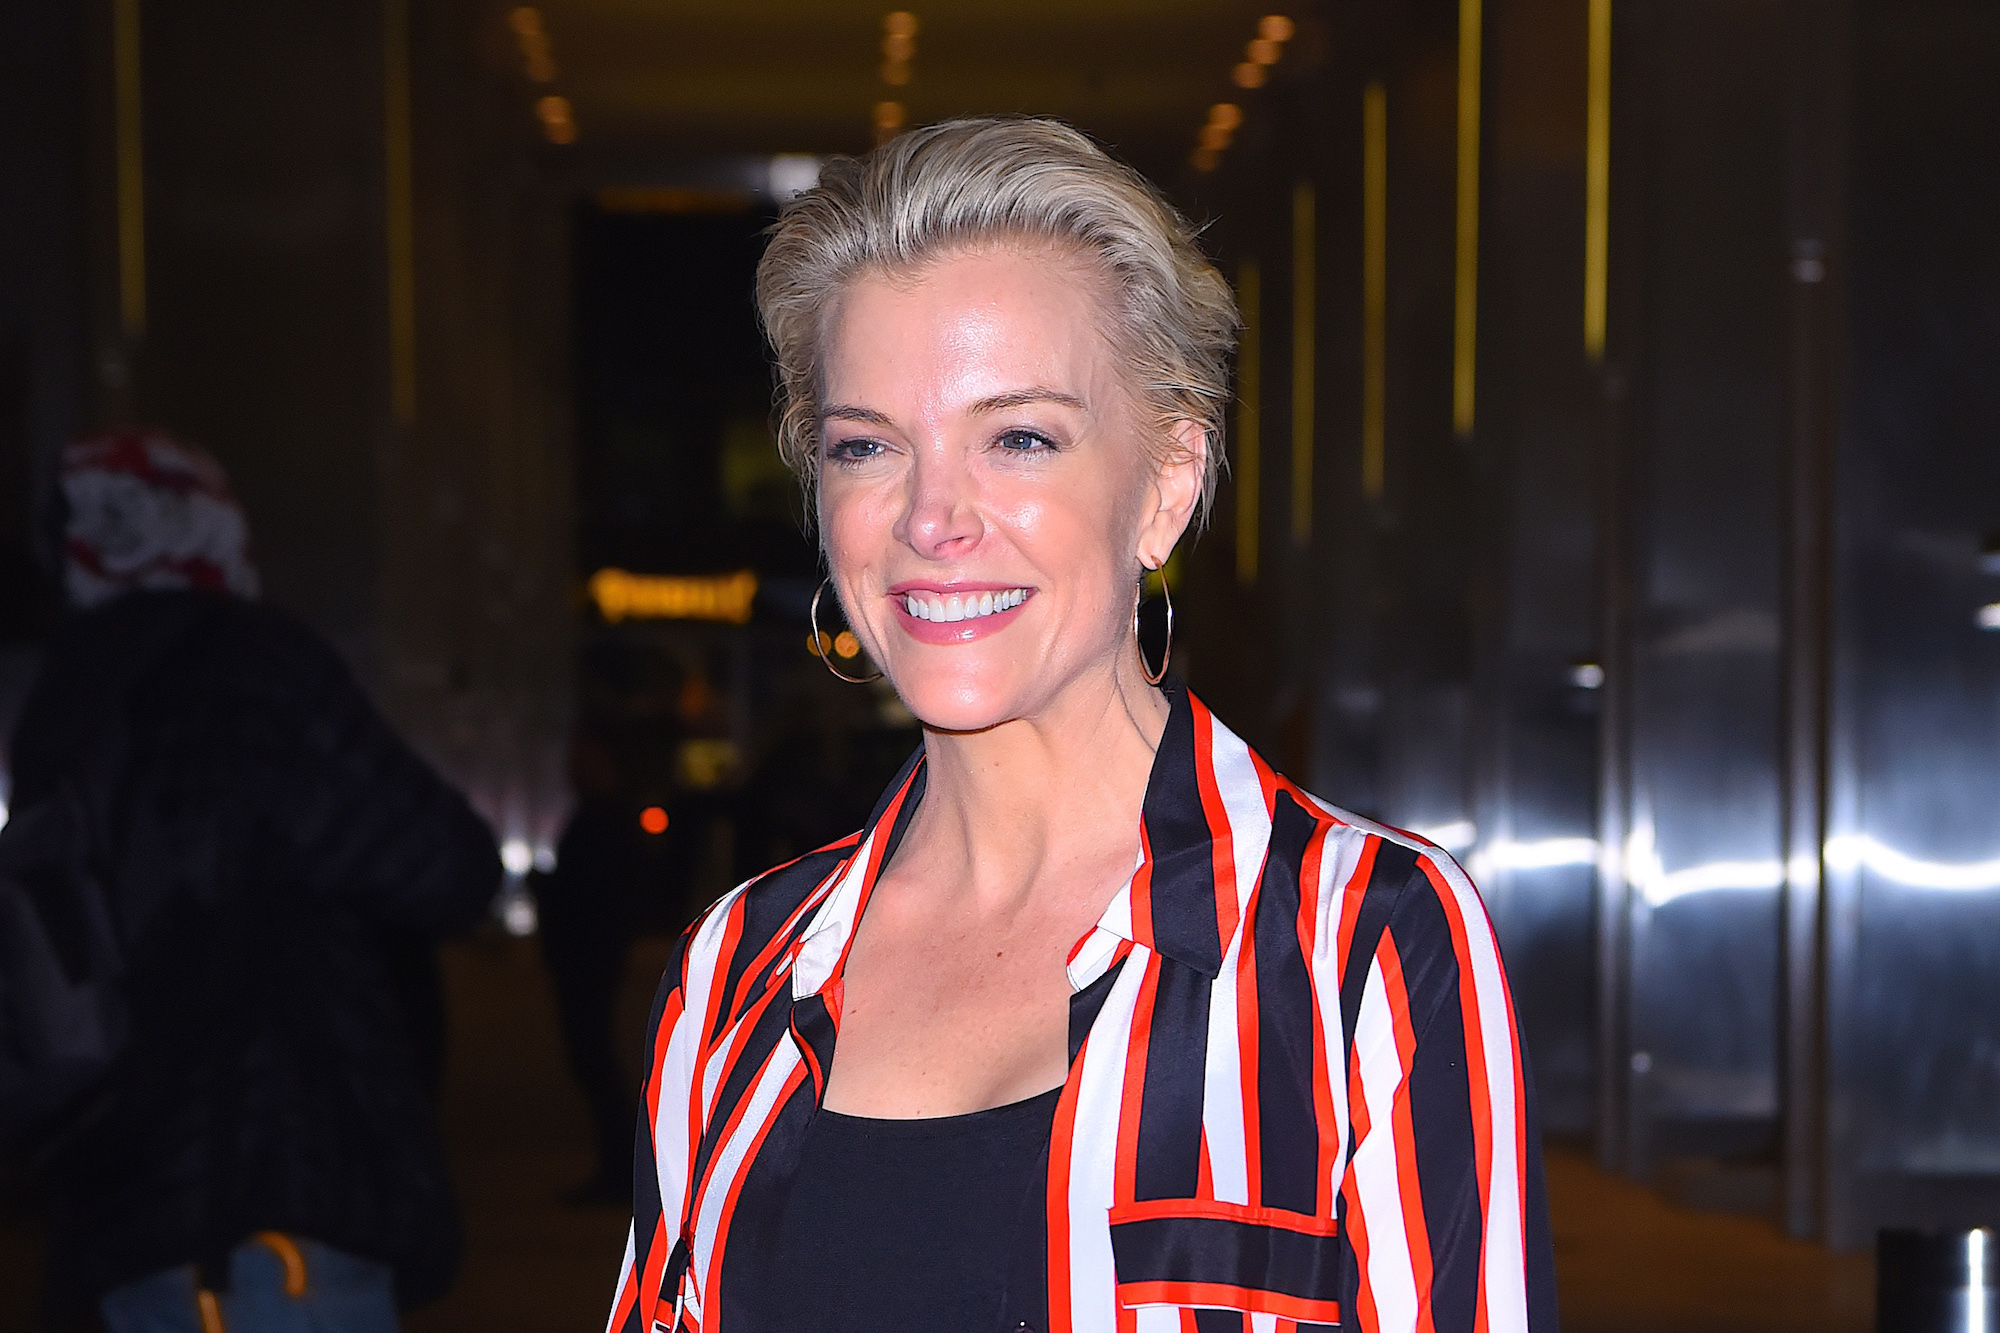 Megyn Kelly Gets Into Podcasting With Devil May Care Media